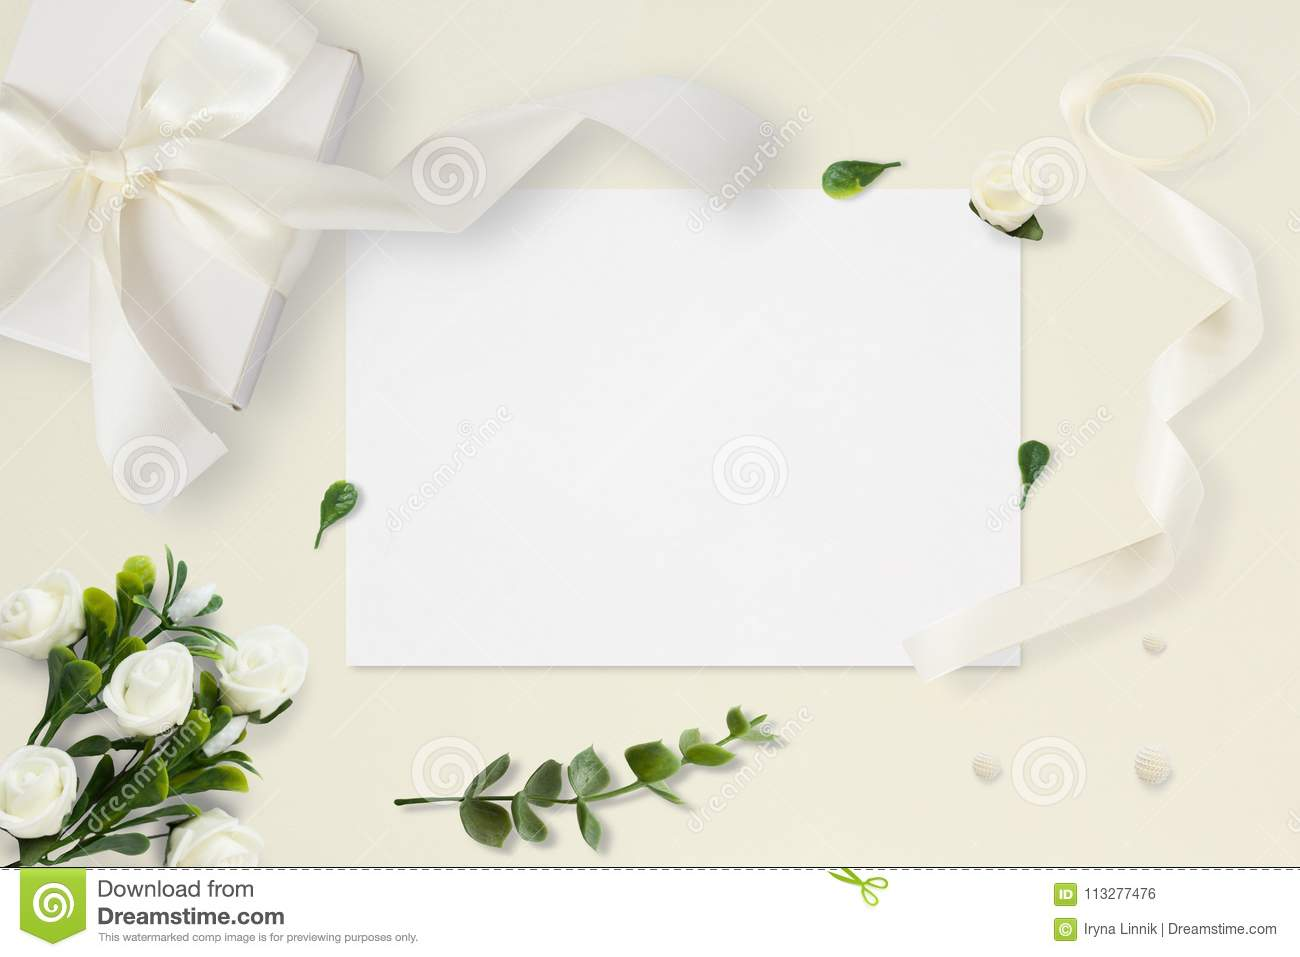 letter envelope and a present on pastel yellow background wedding invitation cards or love